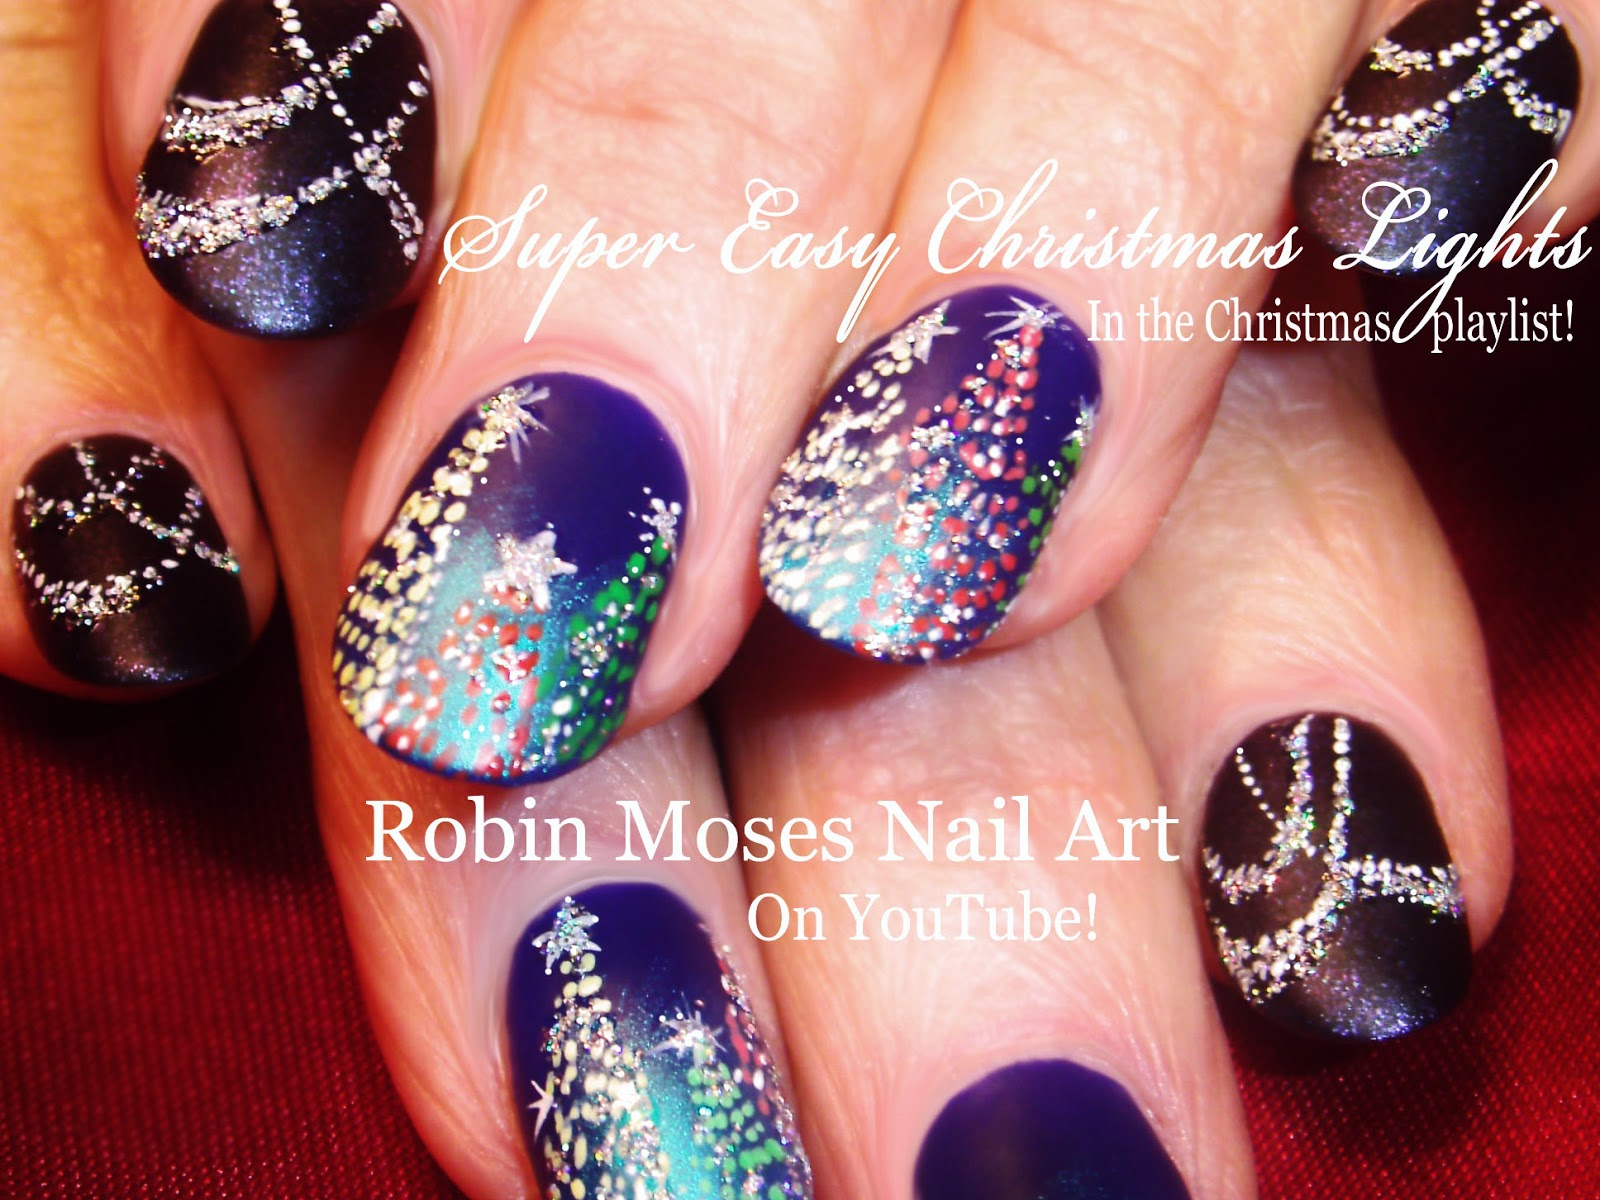 Robin Moses Nail Art: Easy Christmas Lights Nail Art